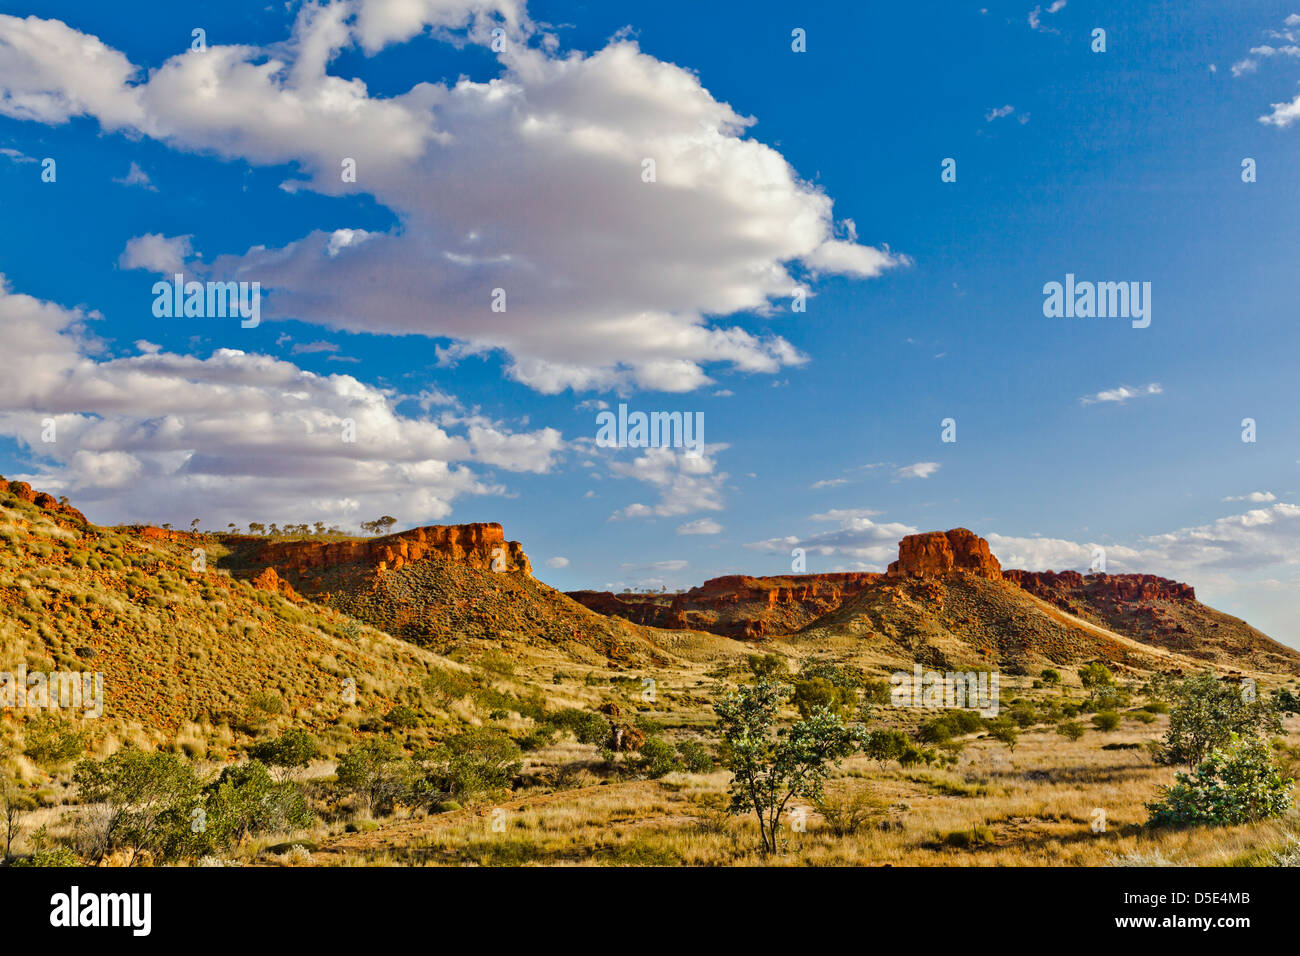 Australia, Australia occidentale, Kimberley, Great Northern Highway vicino a Fitzroy Crossing Immagini Stock